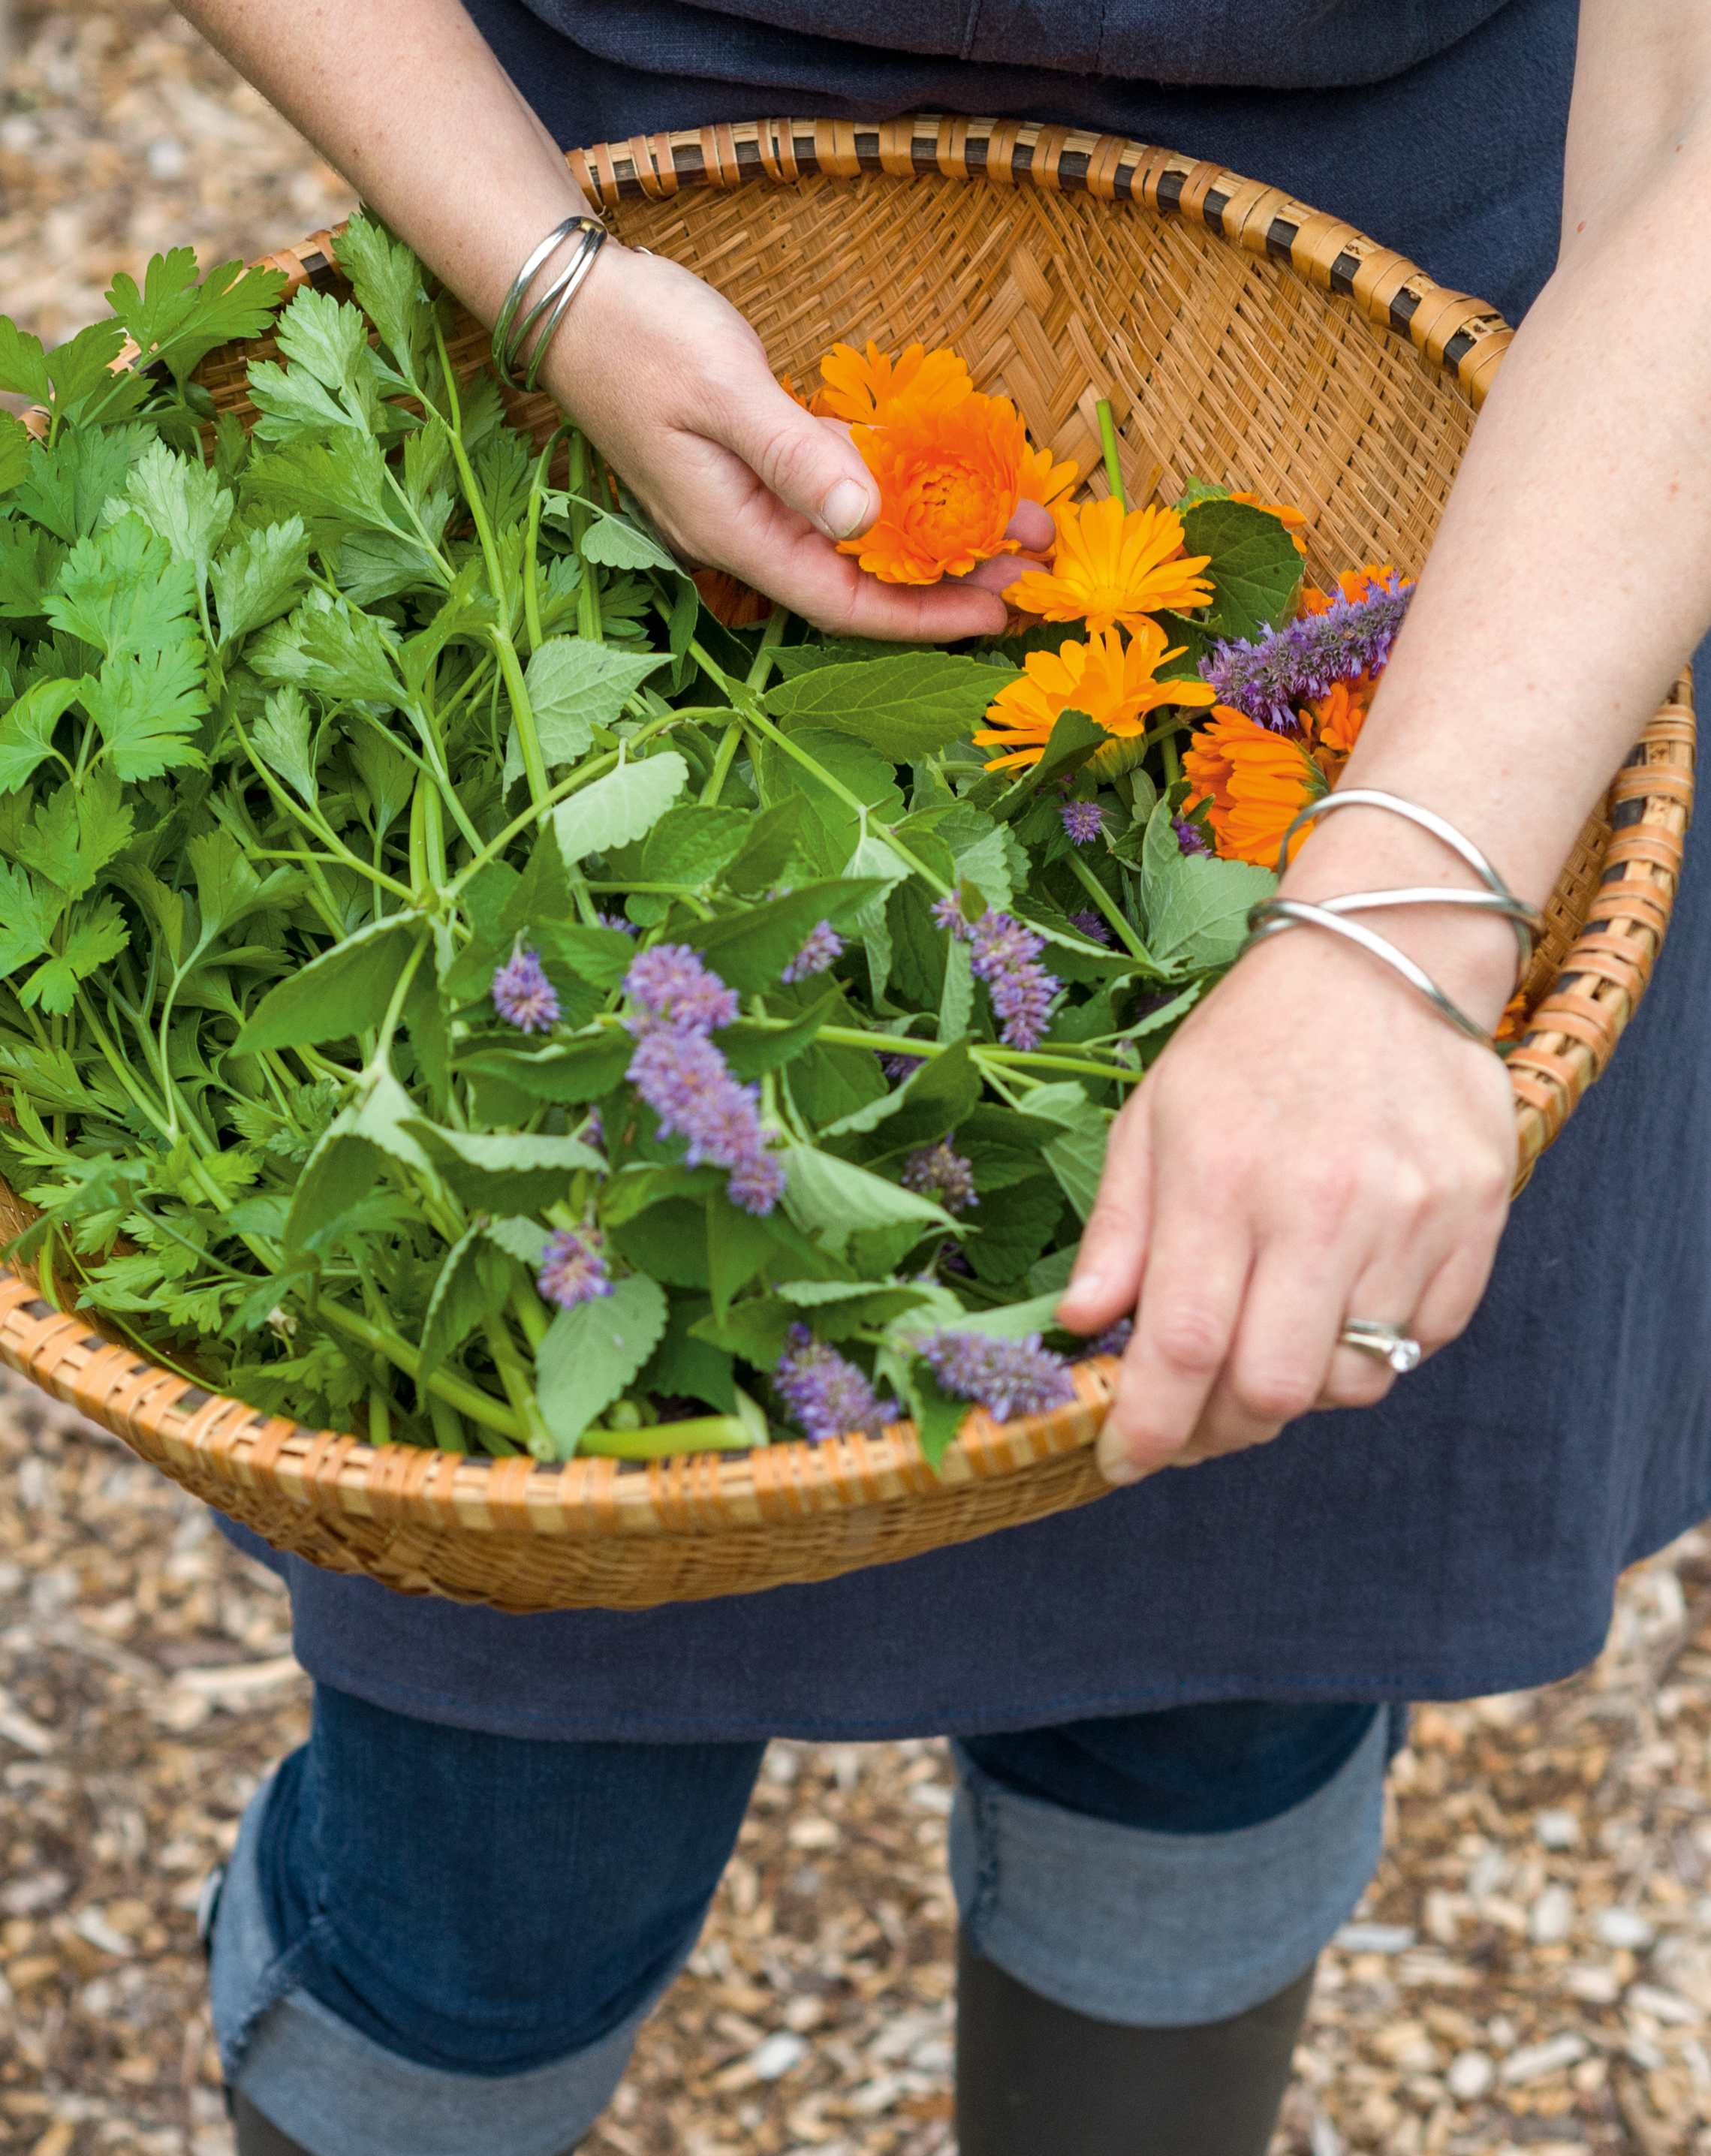 A basket of freshly picked herbs being held in someone's forearms.